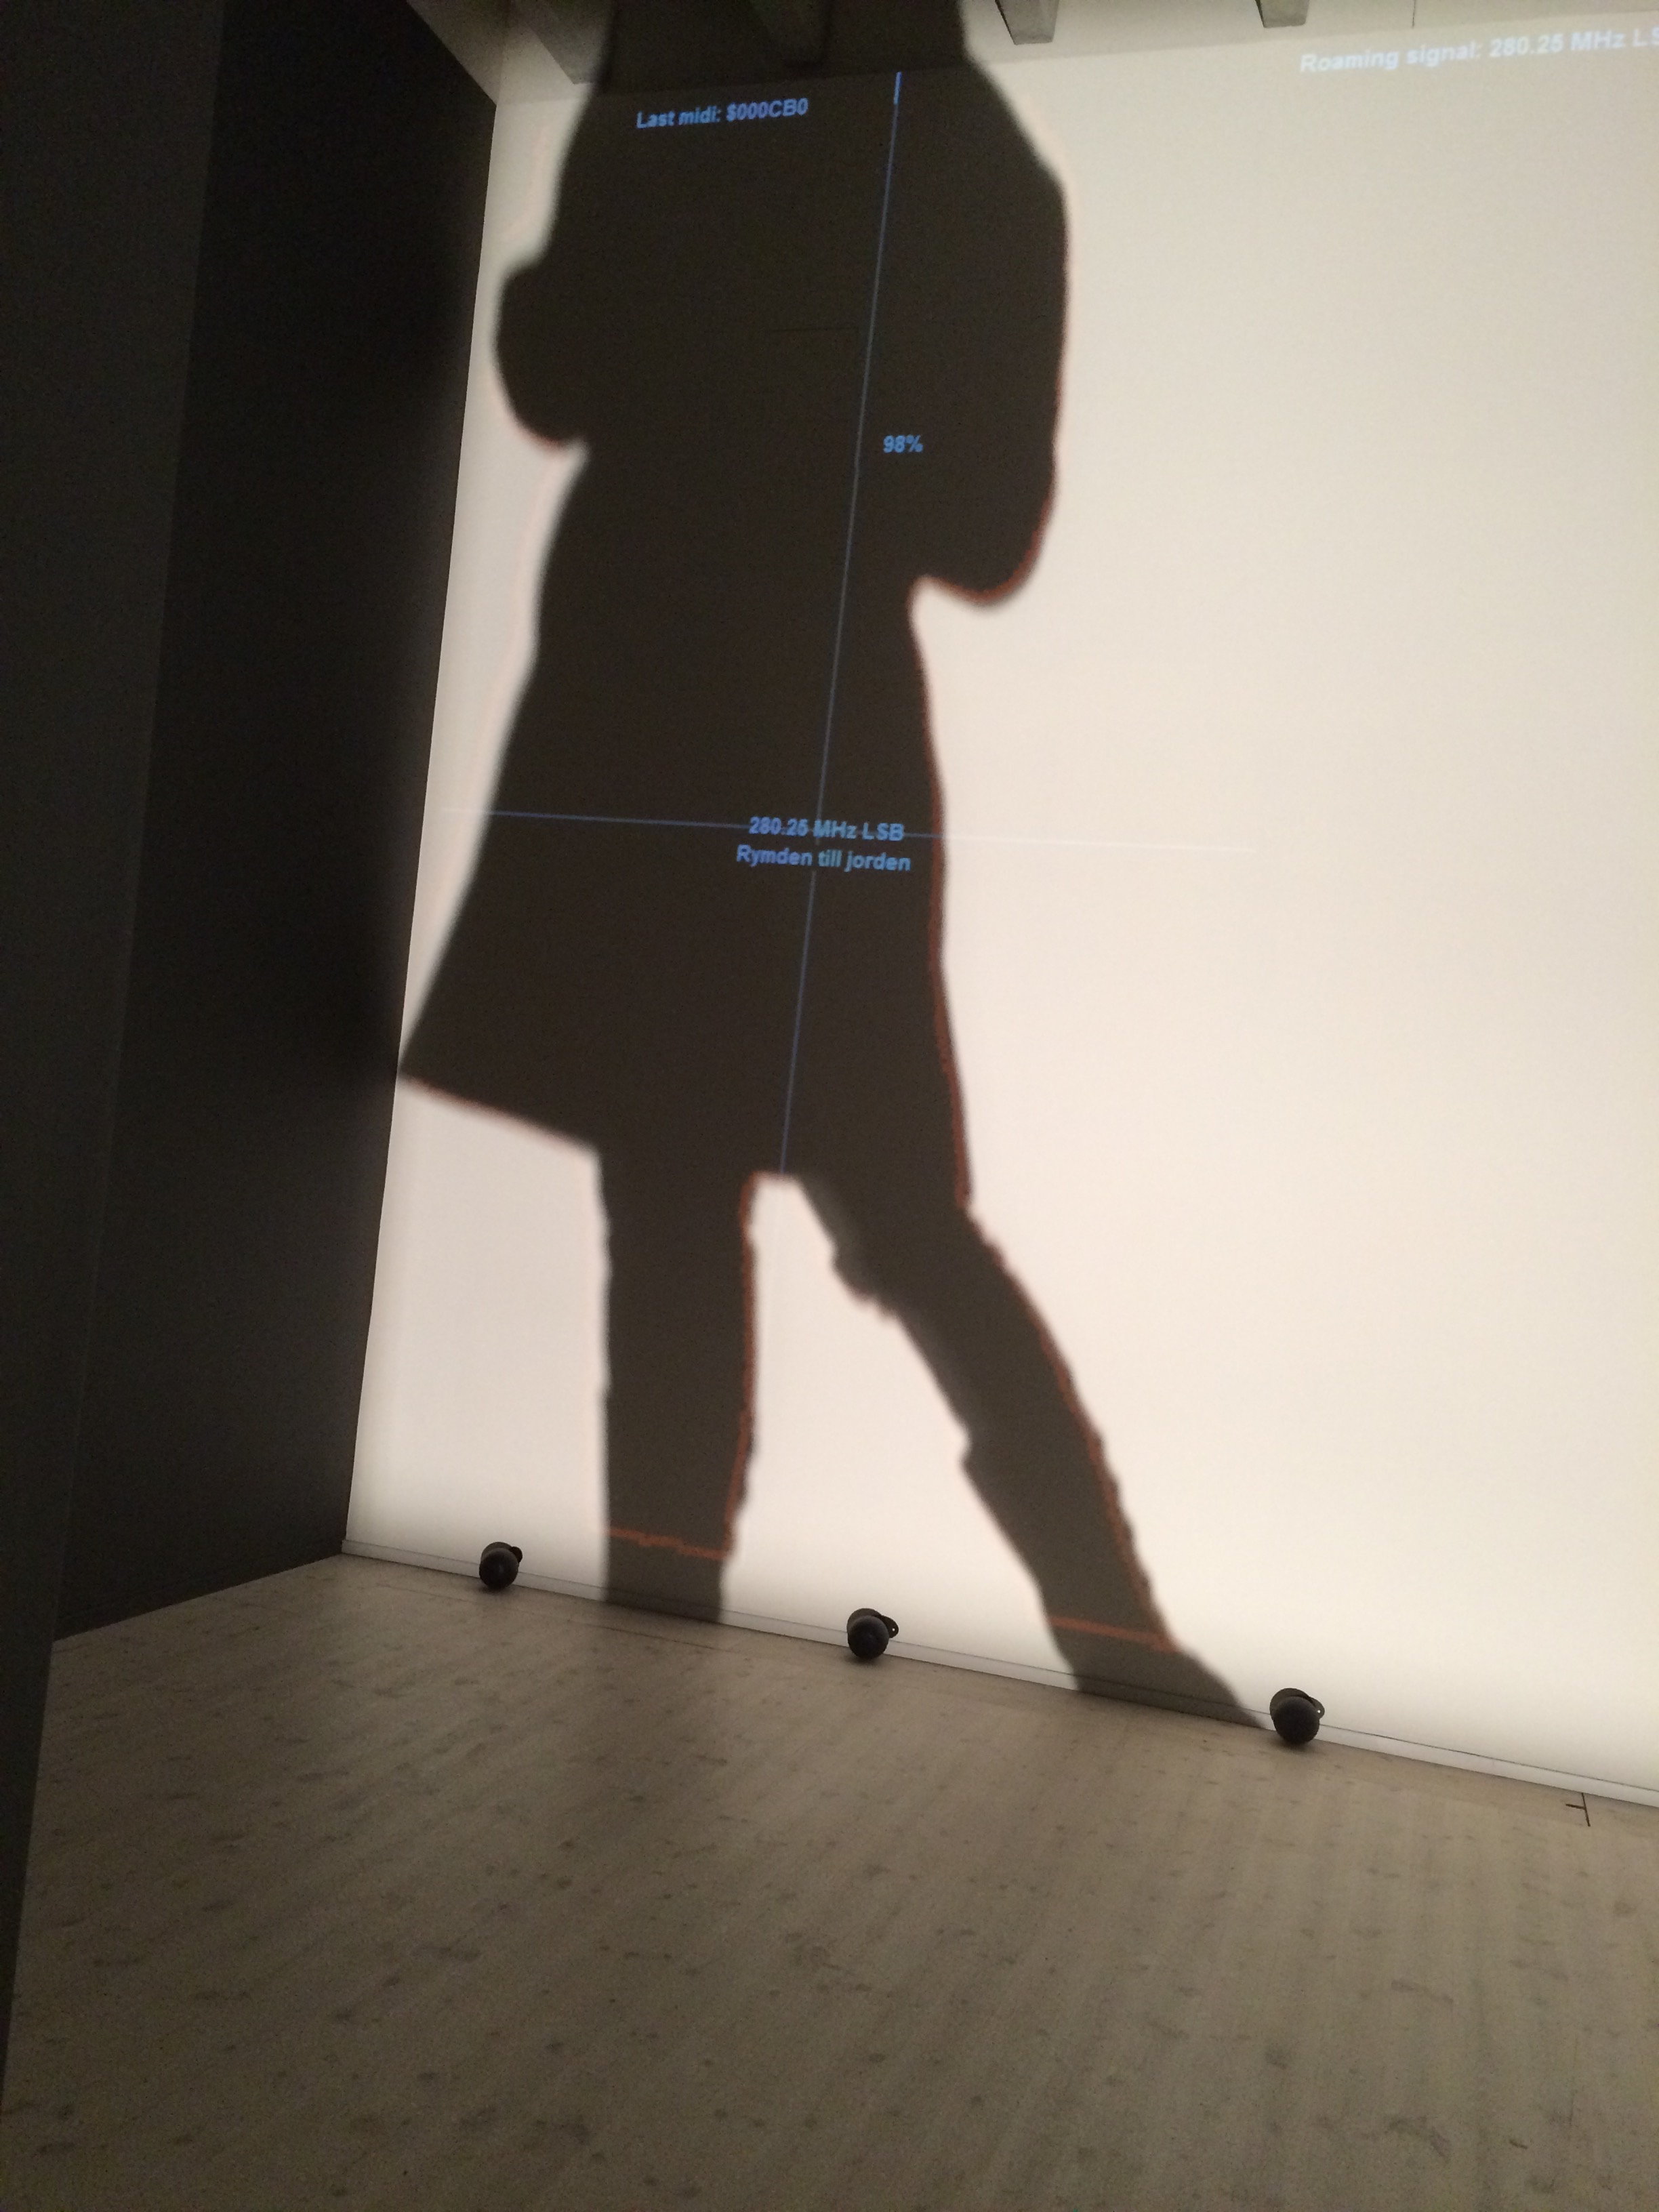 Rafael Lozano Hemmer's Frequency and Voume